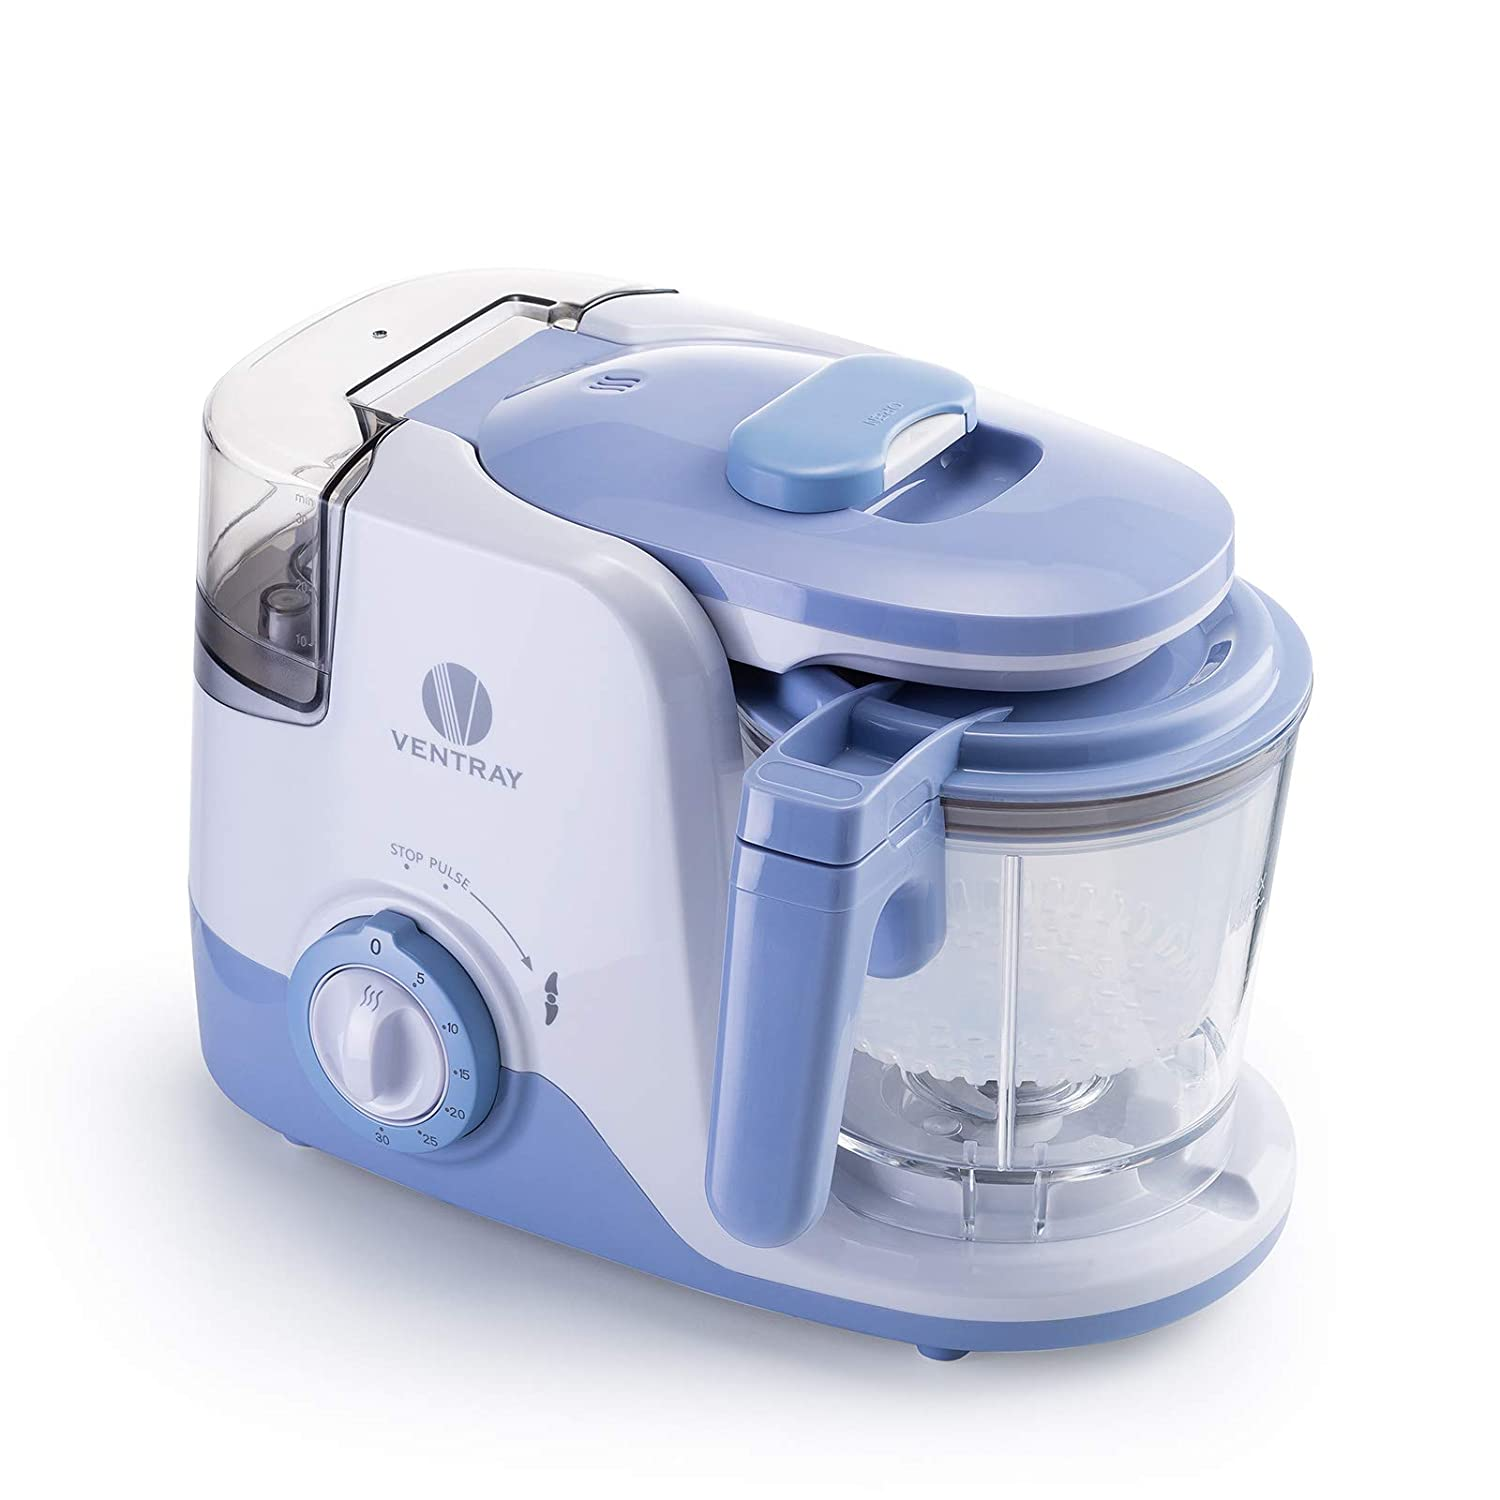 Ventray BabyGrow 600 Purple Instant Heating, Baby Food Maker, Blender all in one. Programmable baby food processor, removable water tank